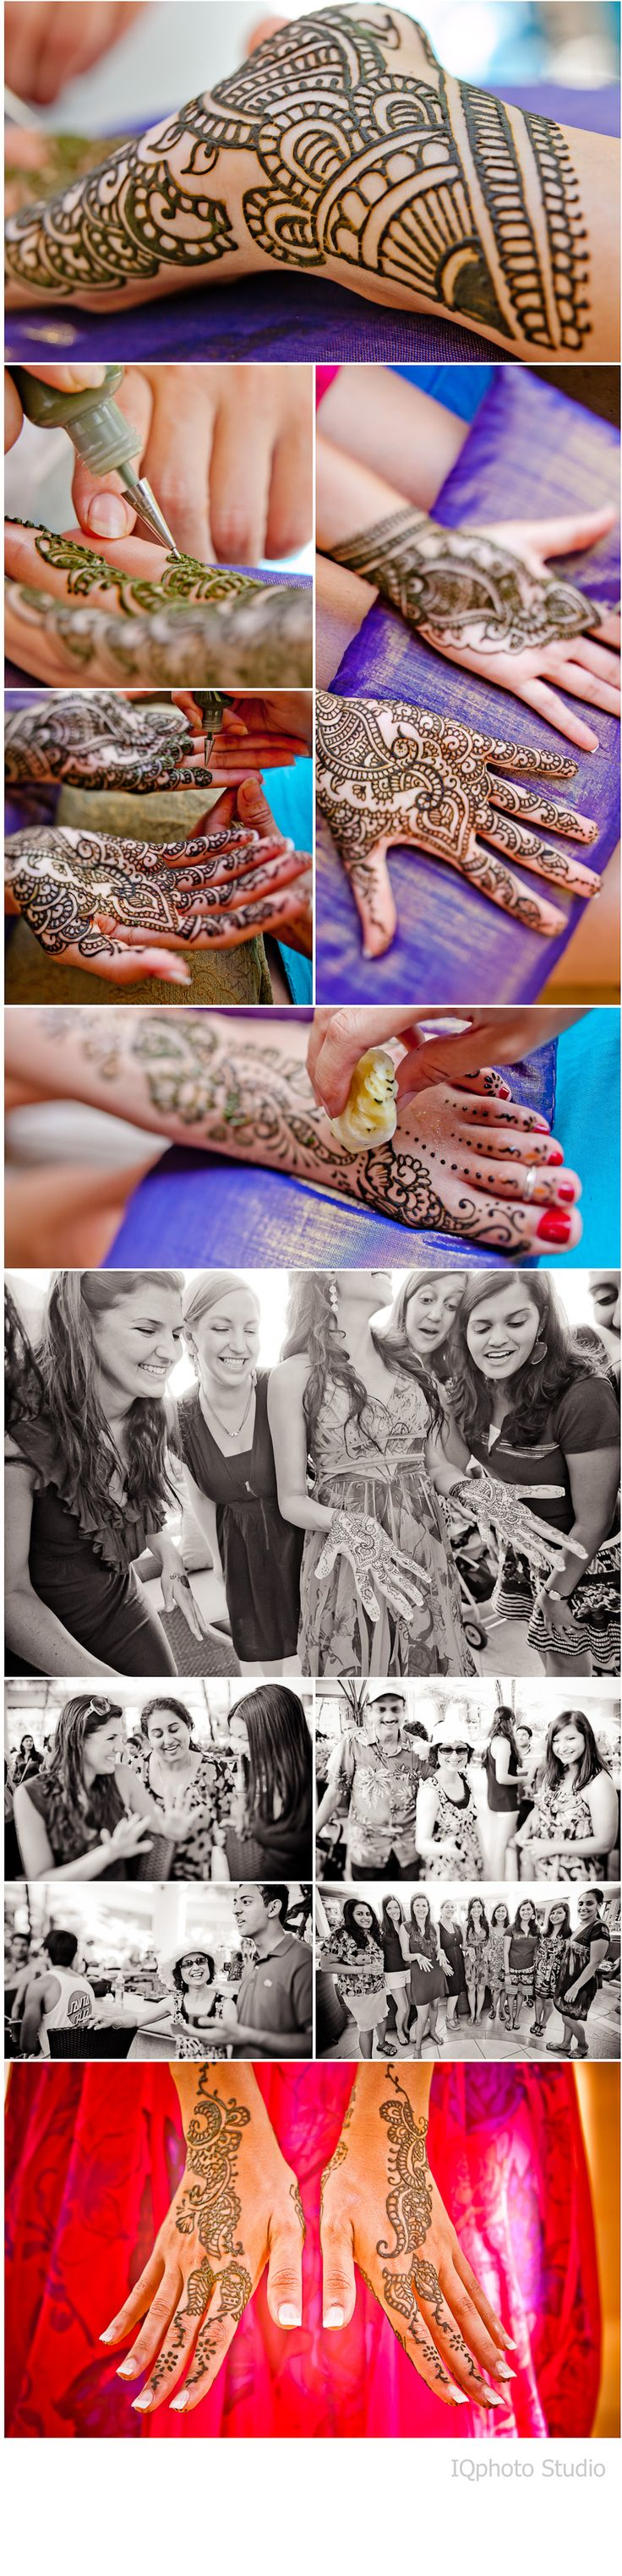 Indian Wedding (Henna). We also had henna artists at our wedding reception so people could get henna.